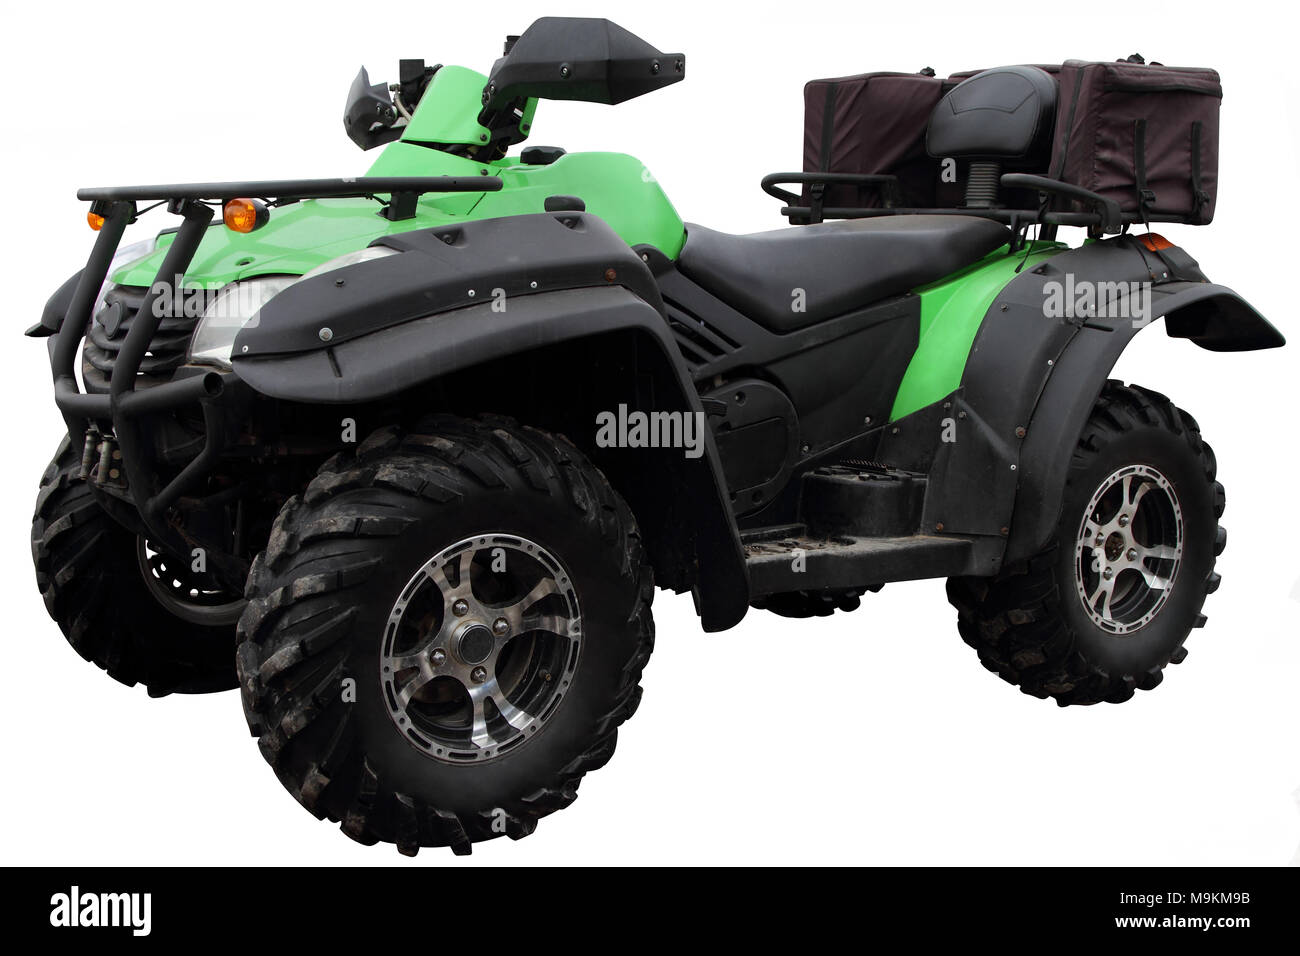 Modern ATV with bags for carrying luggage is isolated on white background. Stock Photo